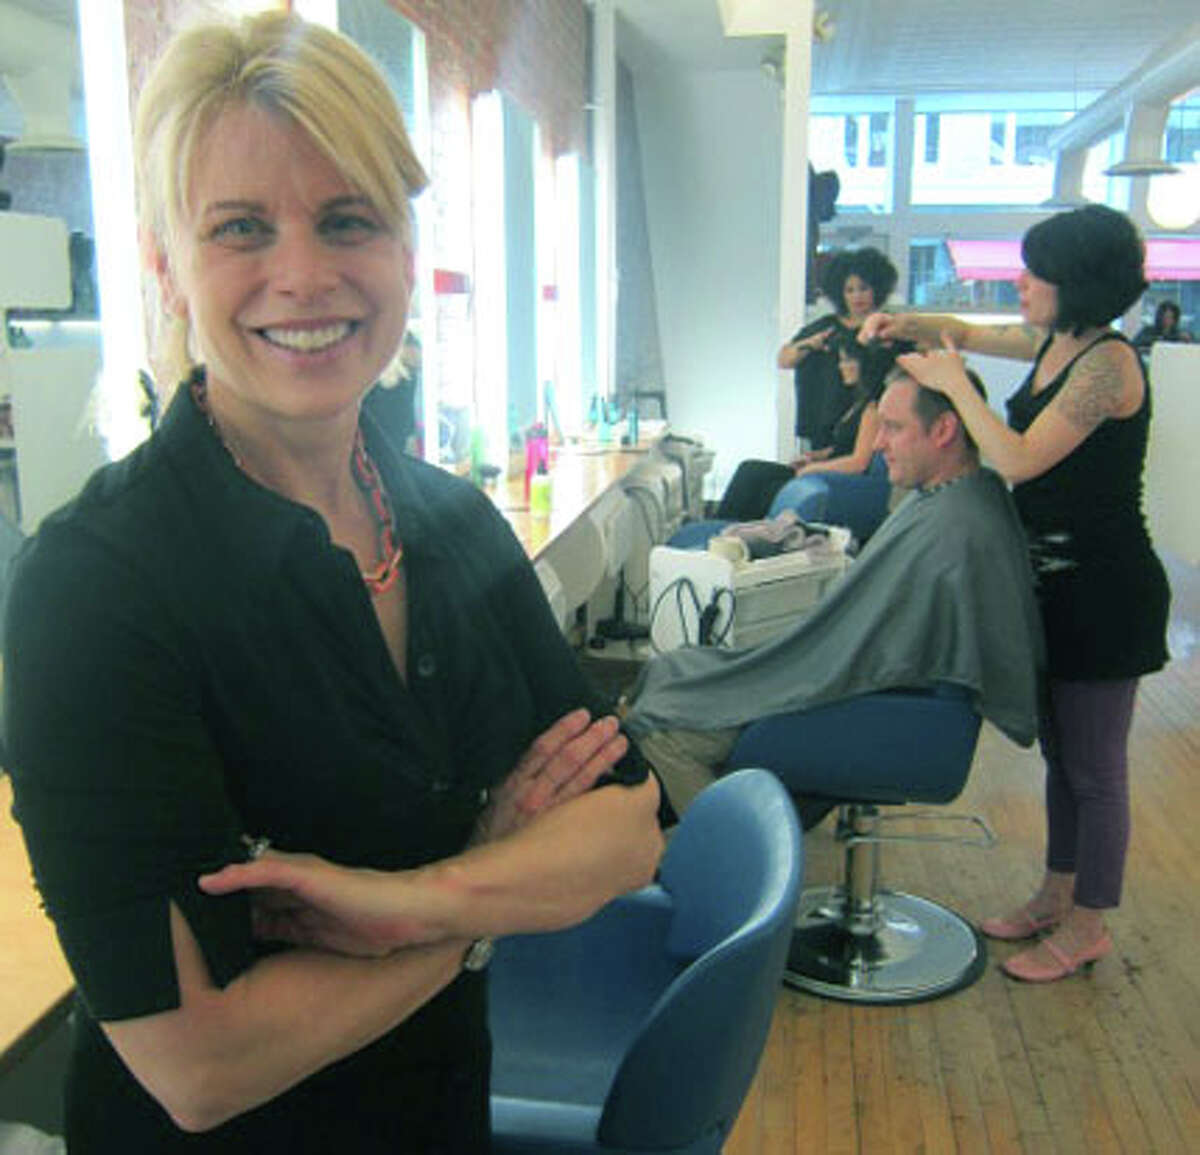 Karen Ross has shepherded the growth of Joe's Salon for 30 years along Bank Street in downtown New Milford. November 2012